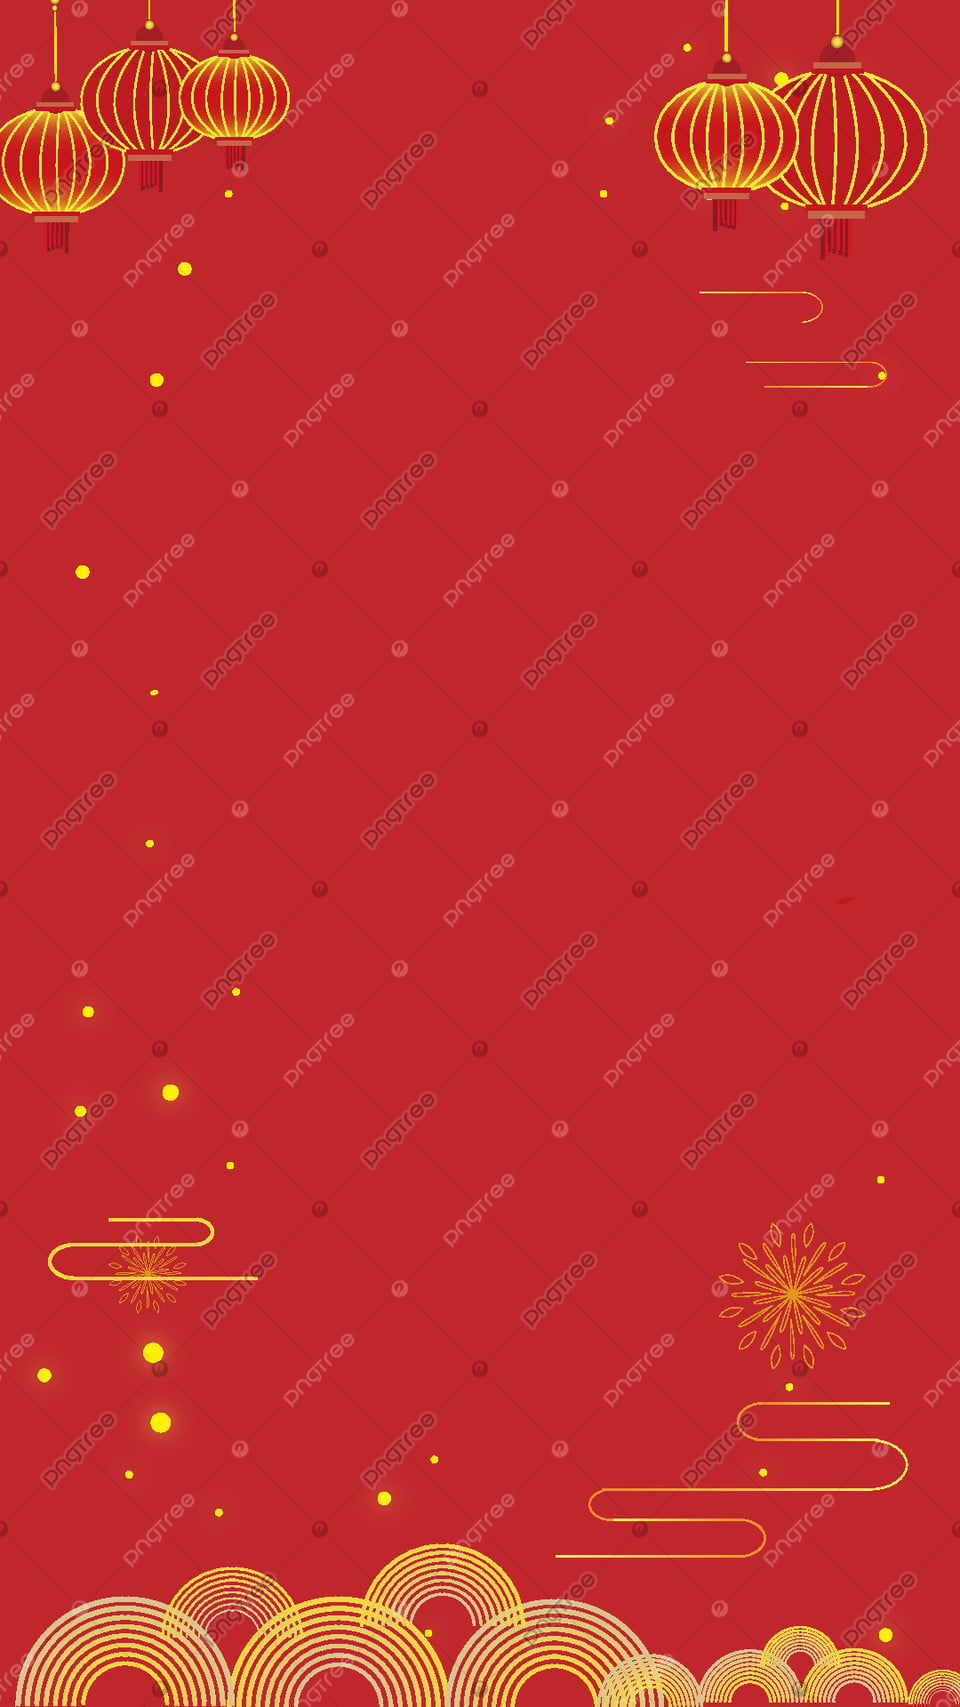 Festive Background Design For Chinese Wedding Invitation Chinese Wedding Invitation Background Material Festive Background Background Image For Free Download